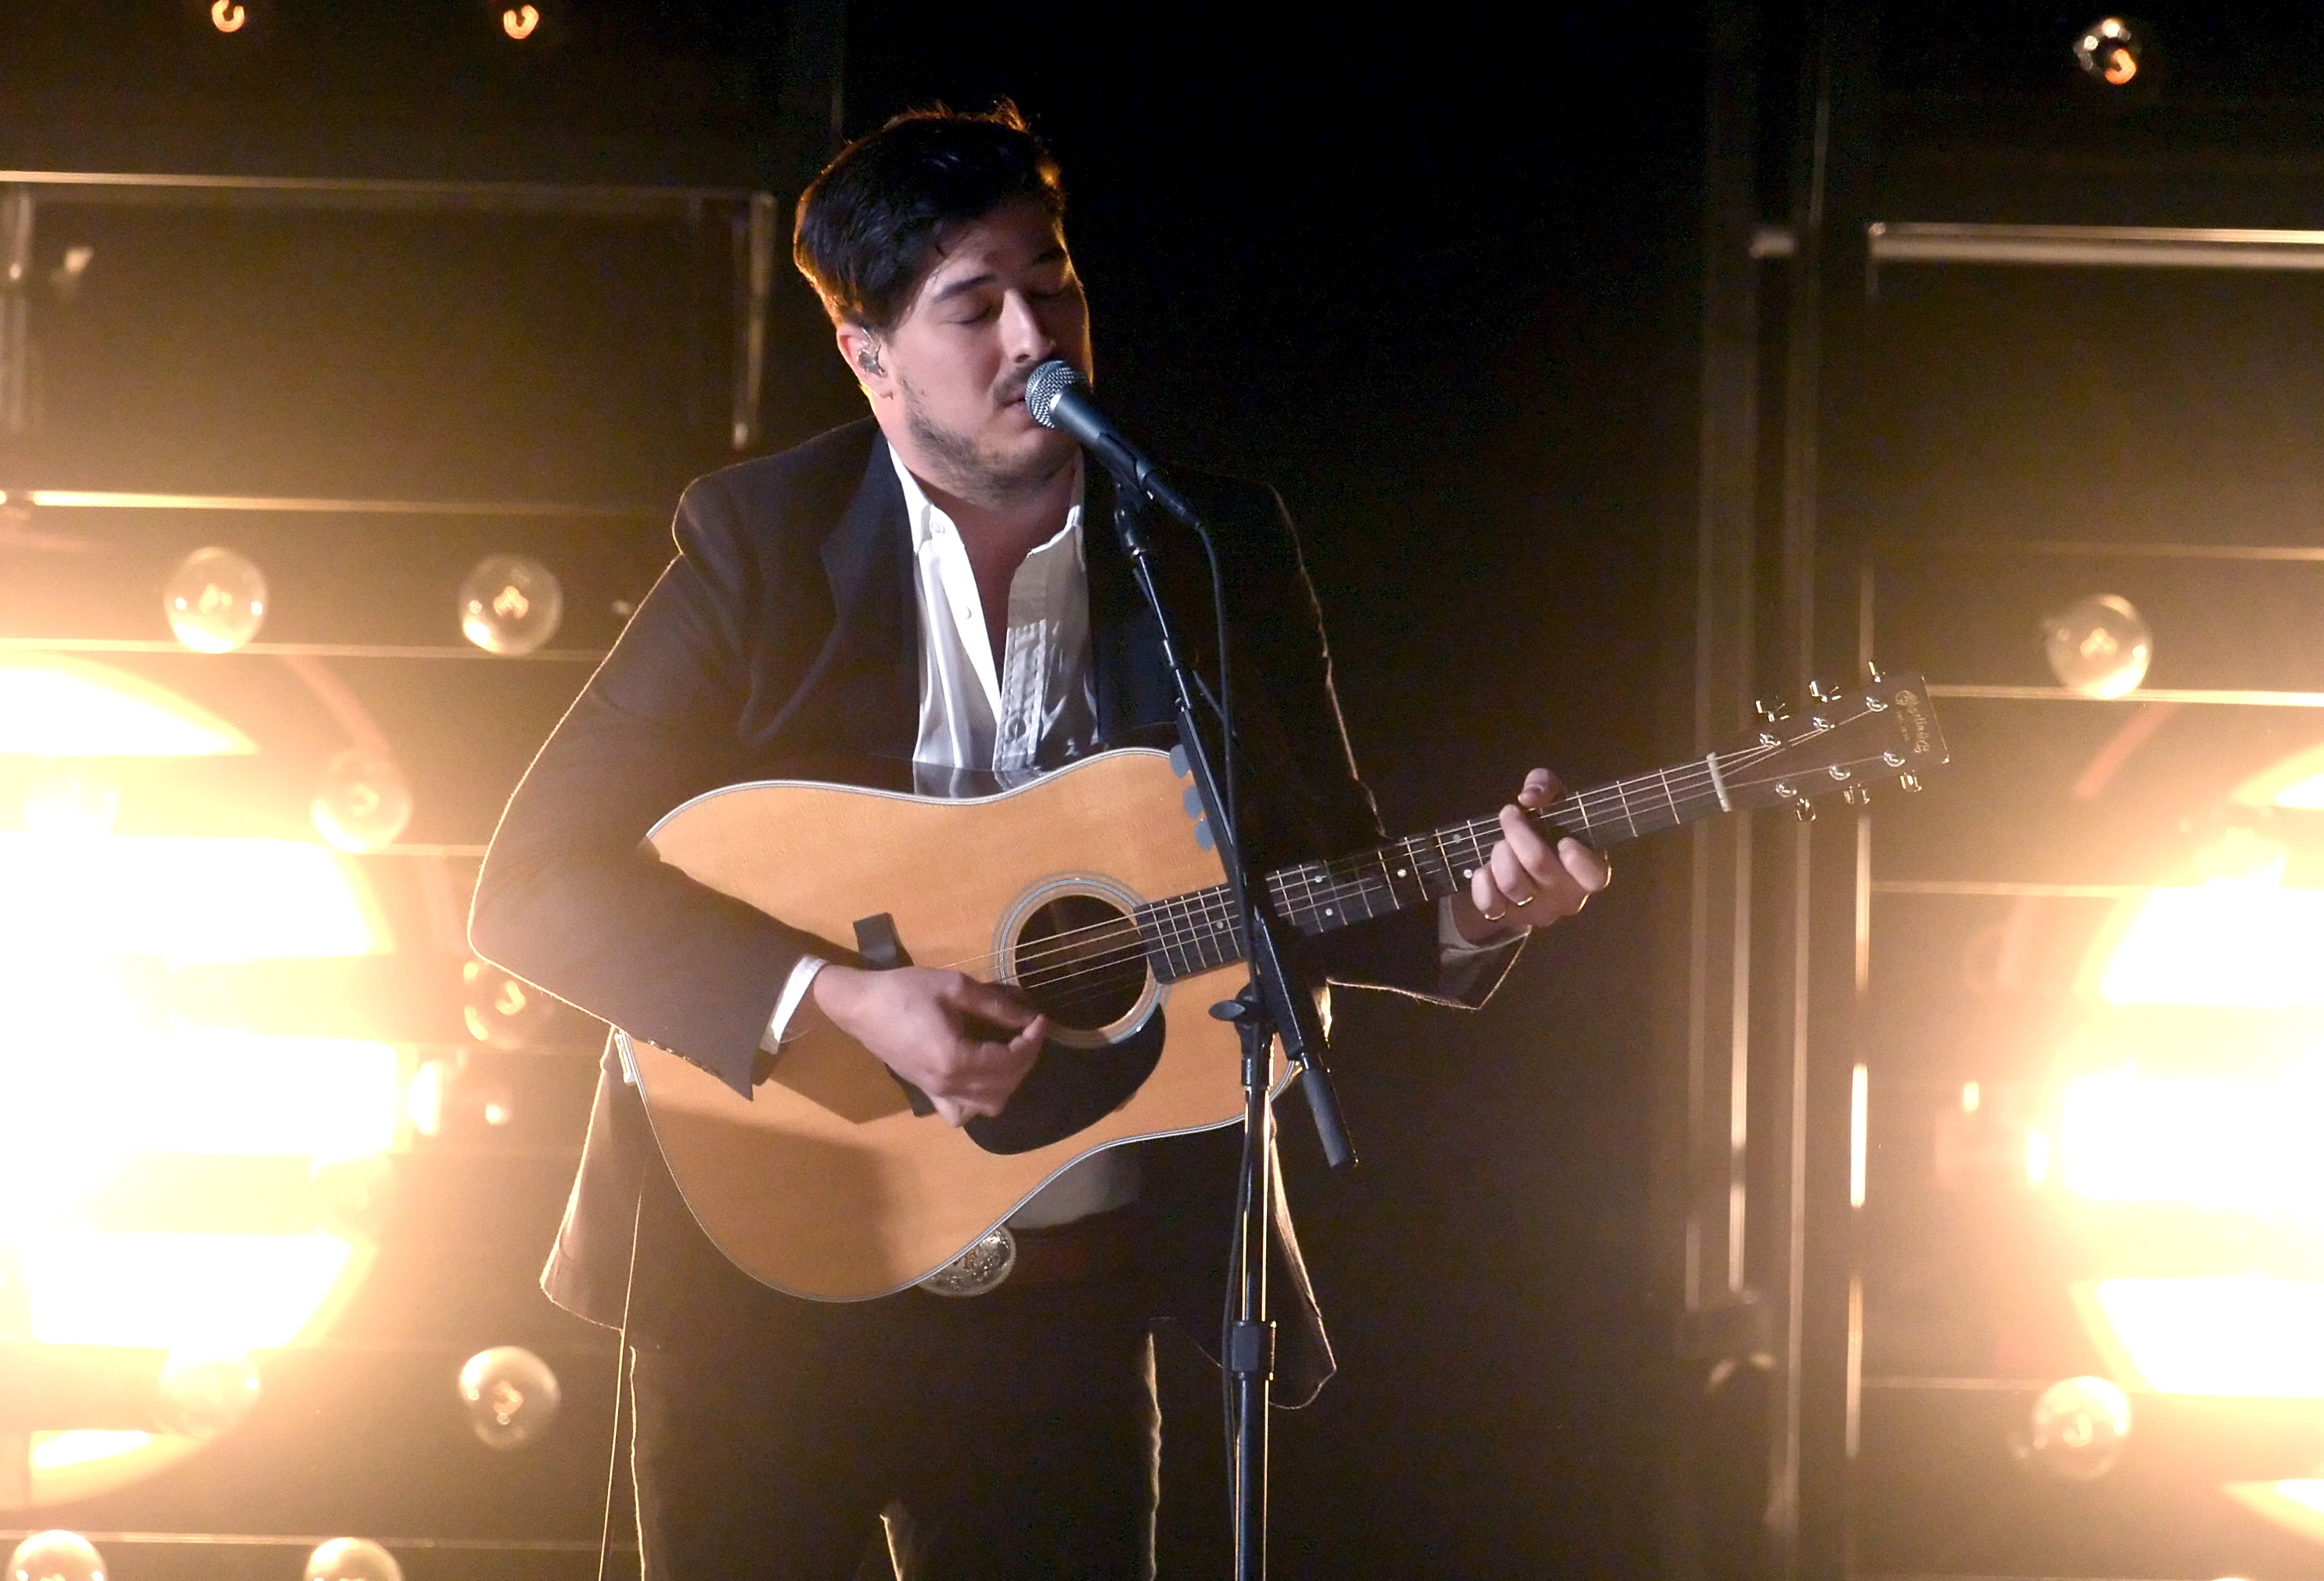 Mumford & Sons performed at the Grammys.